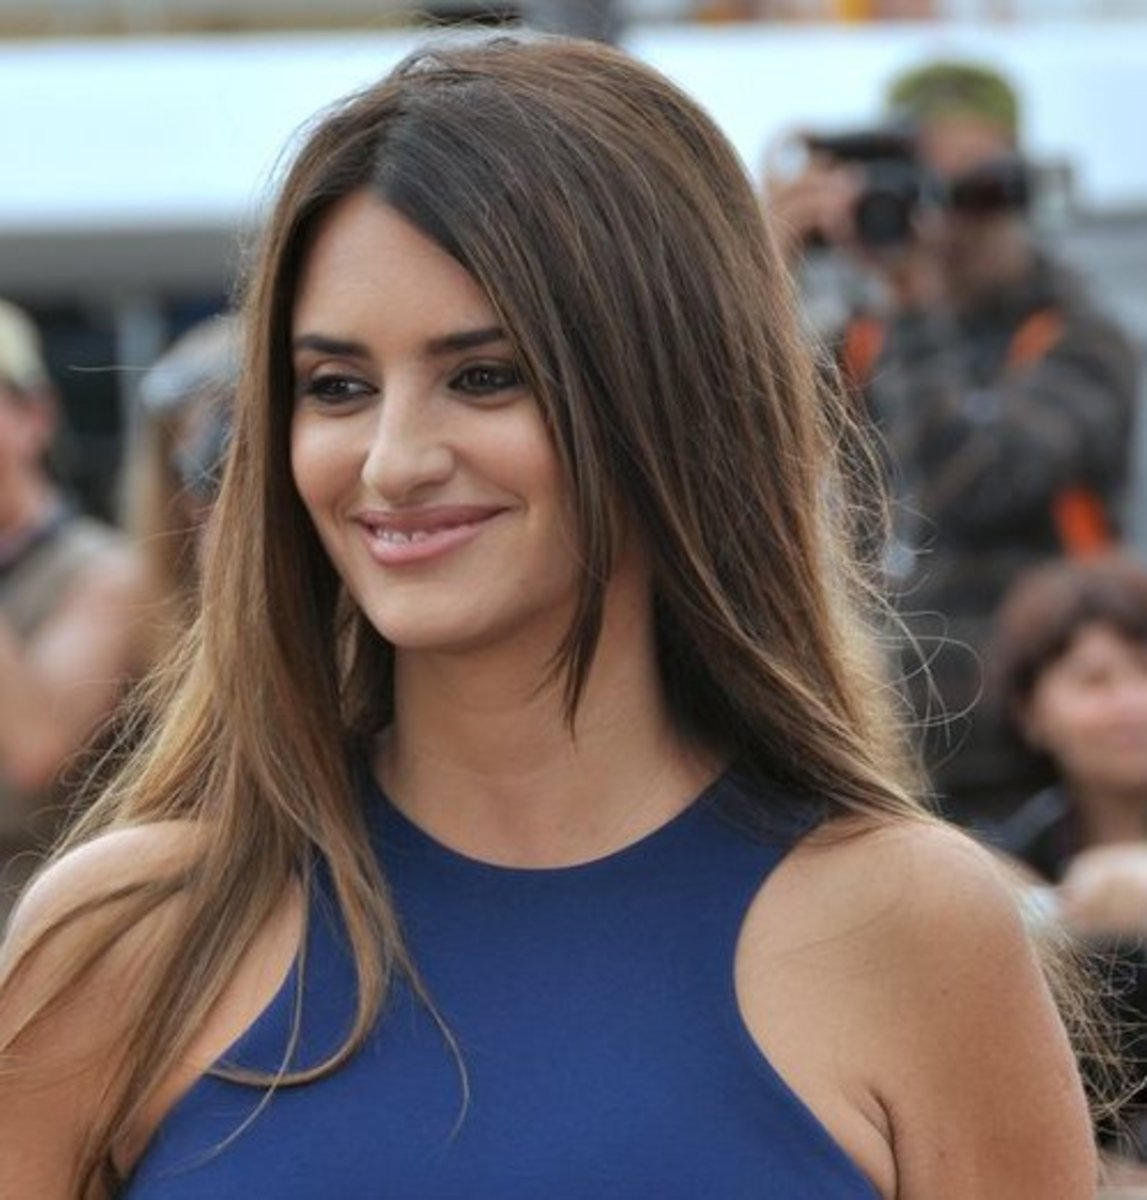 Everything You Need to Know About Penelope Cruz's Acupuncture